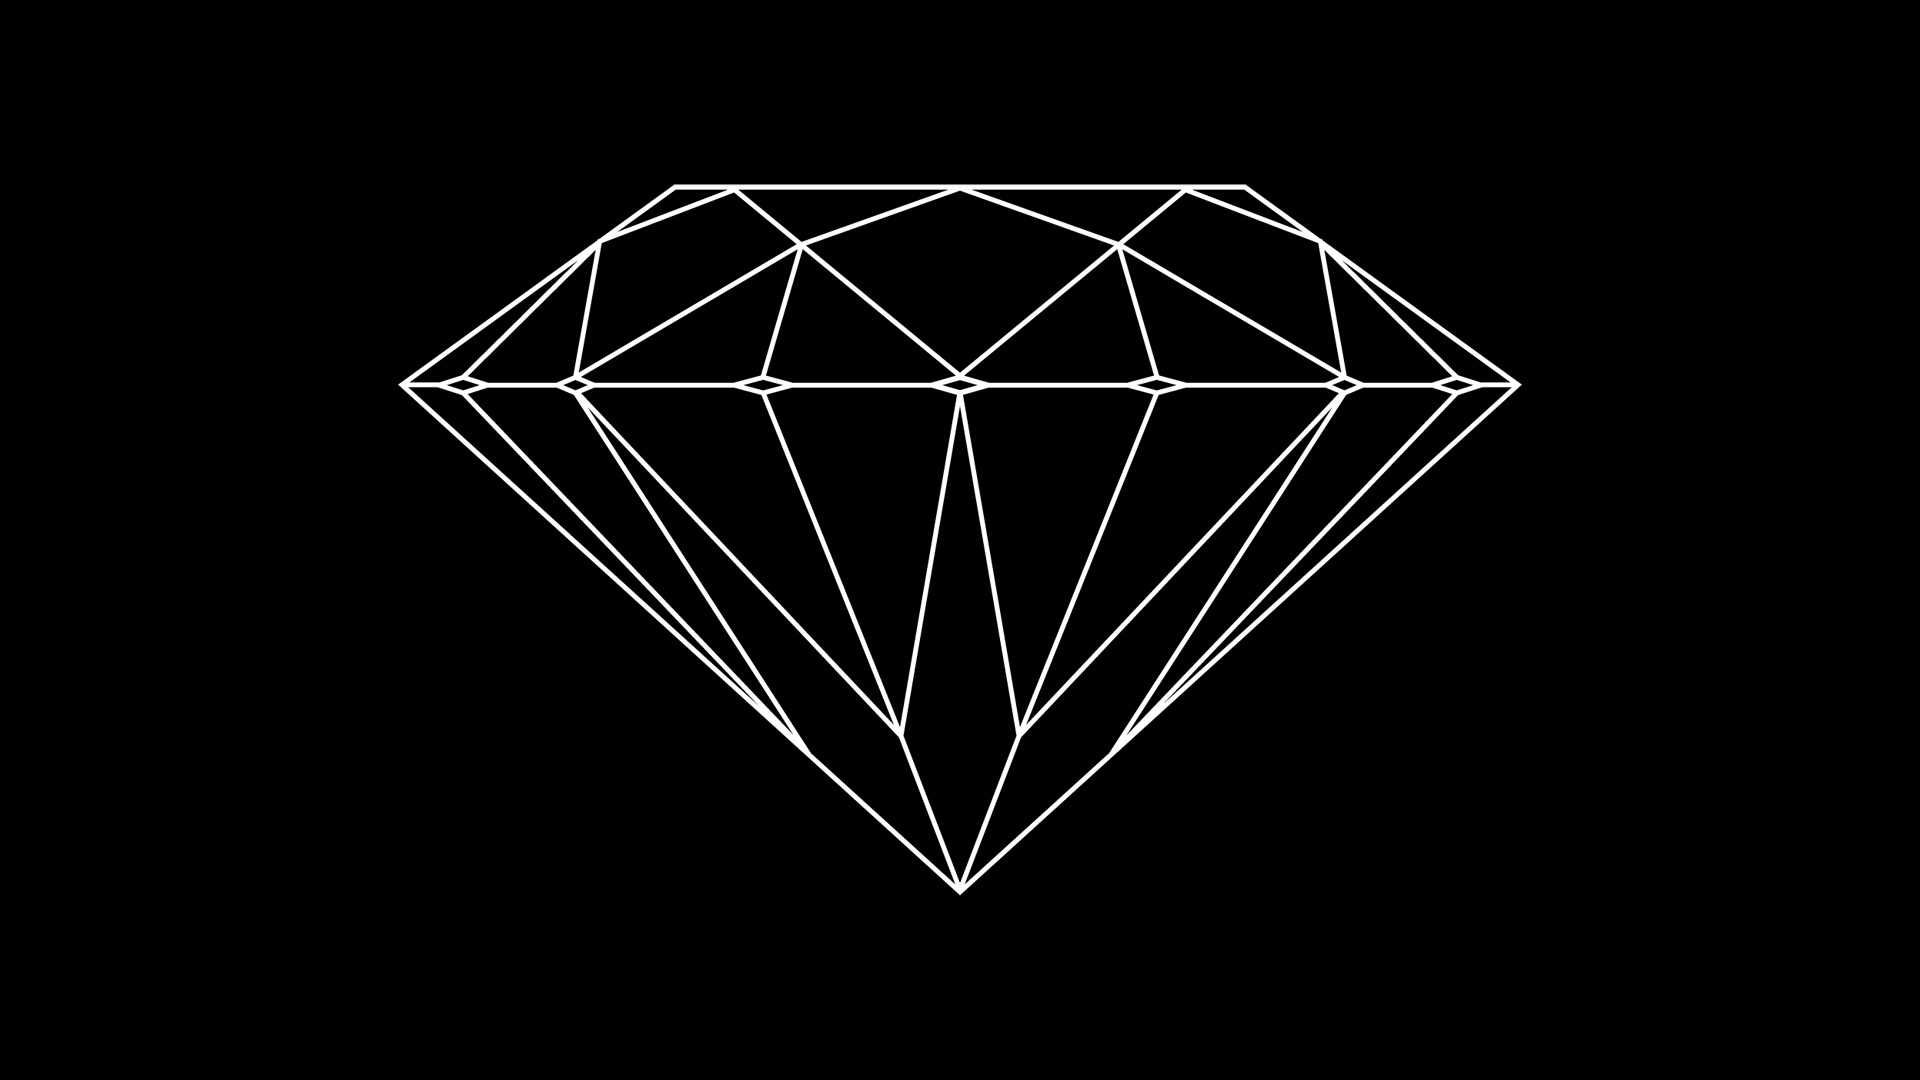 Black And White Diamond Wallpapers Top Free Black And White Diamond Backgrounds Wallpaperaccess